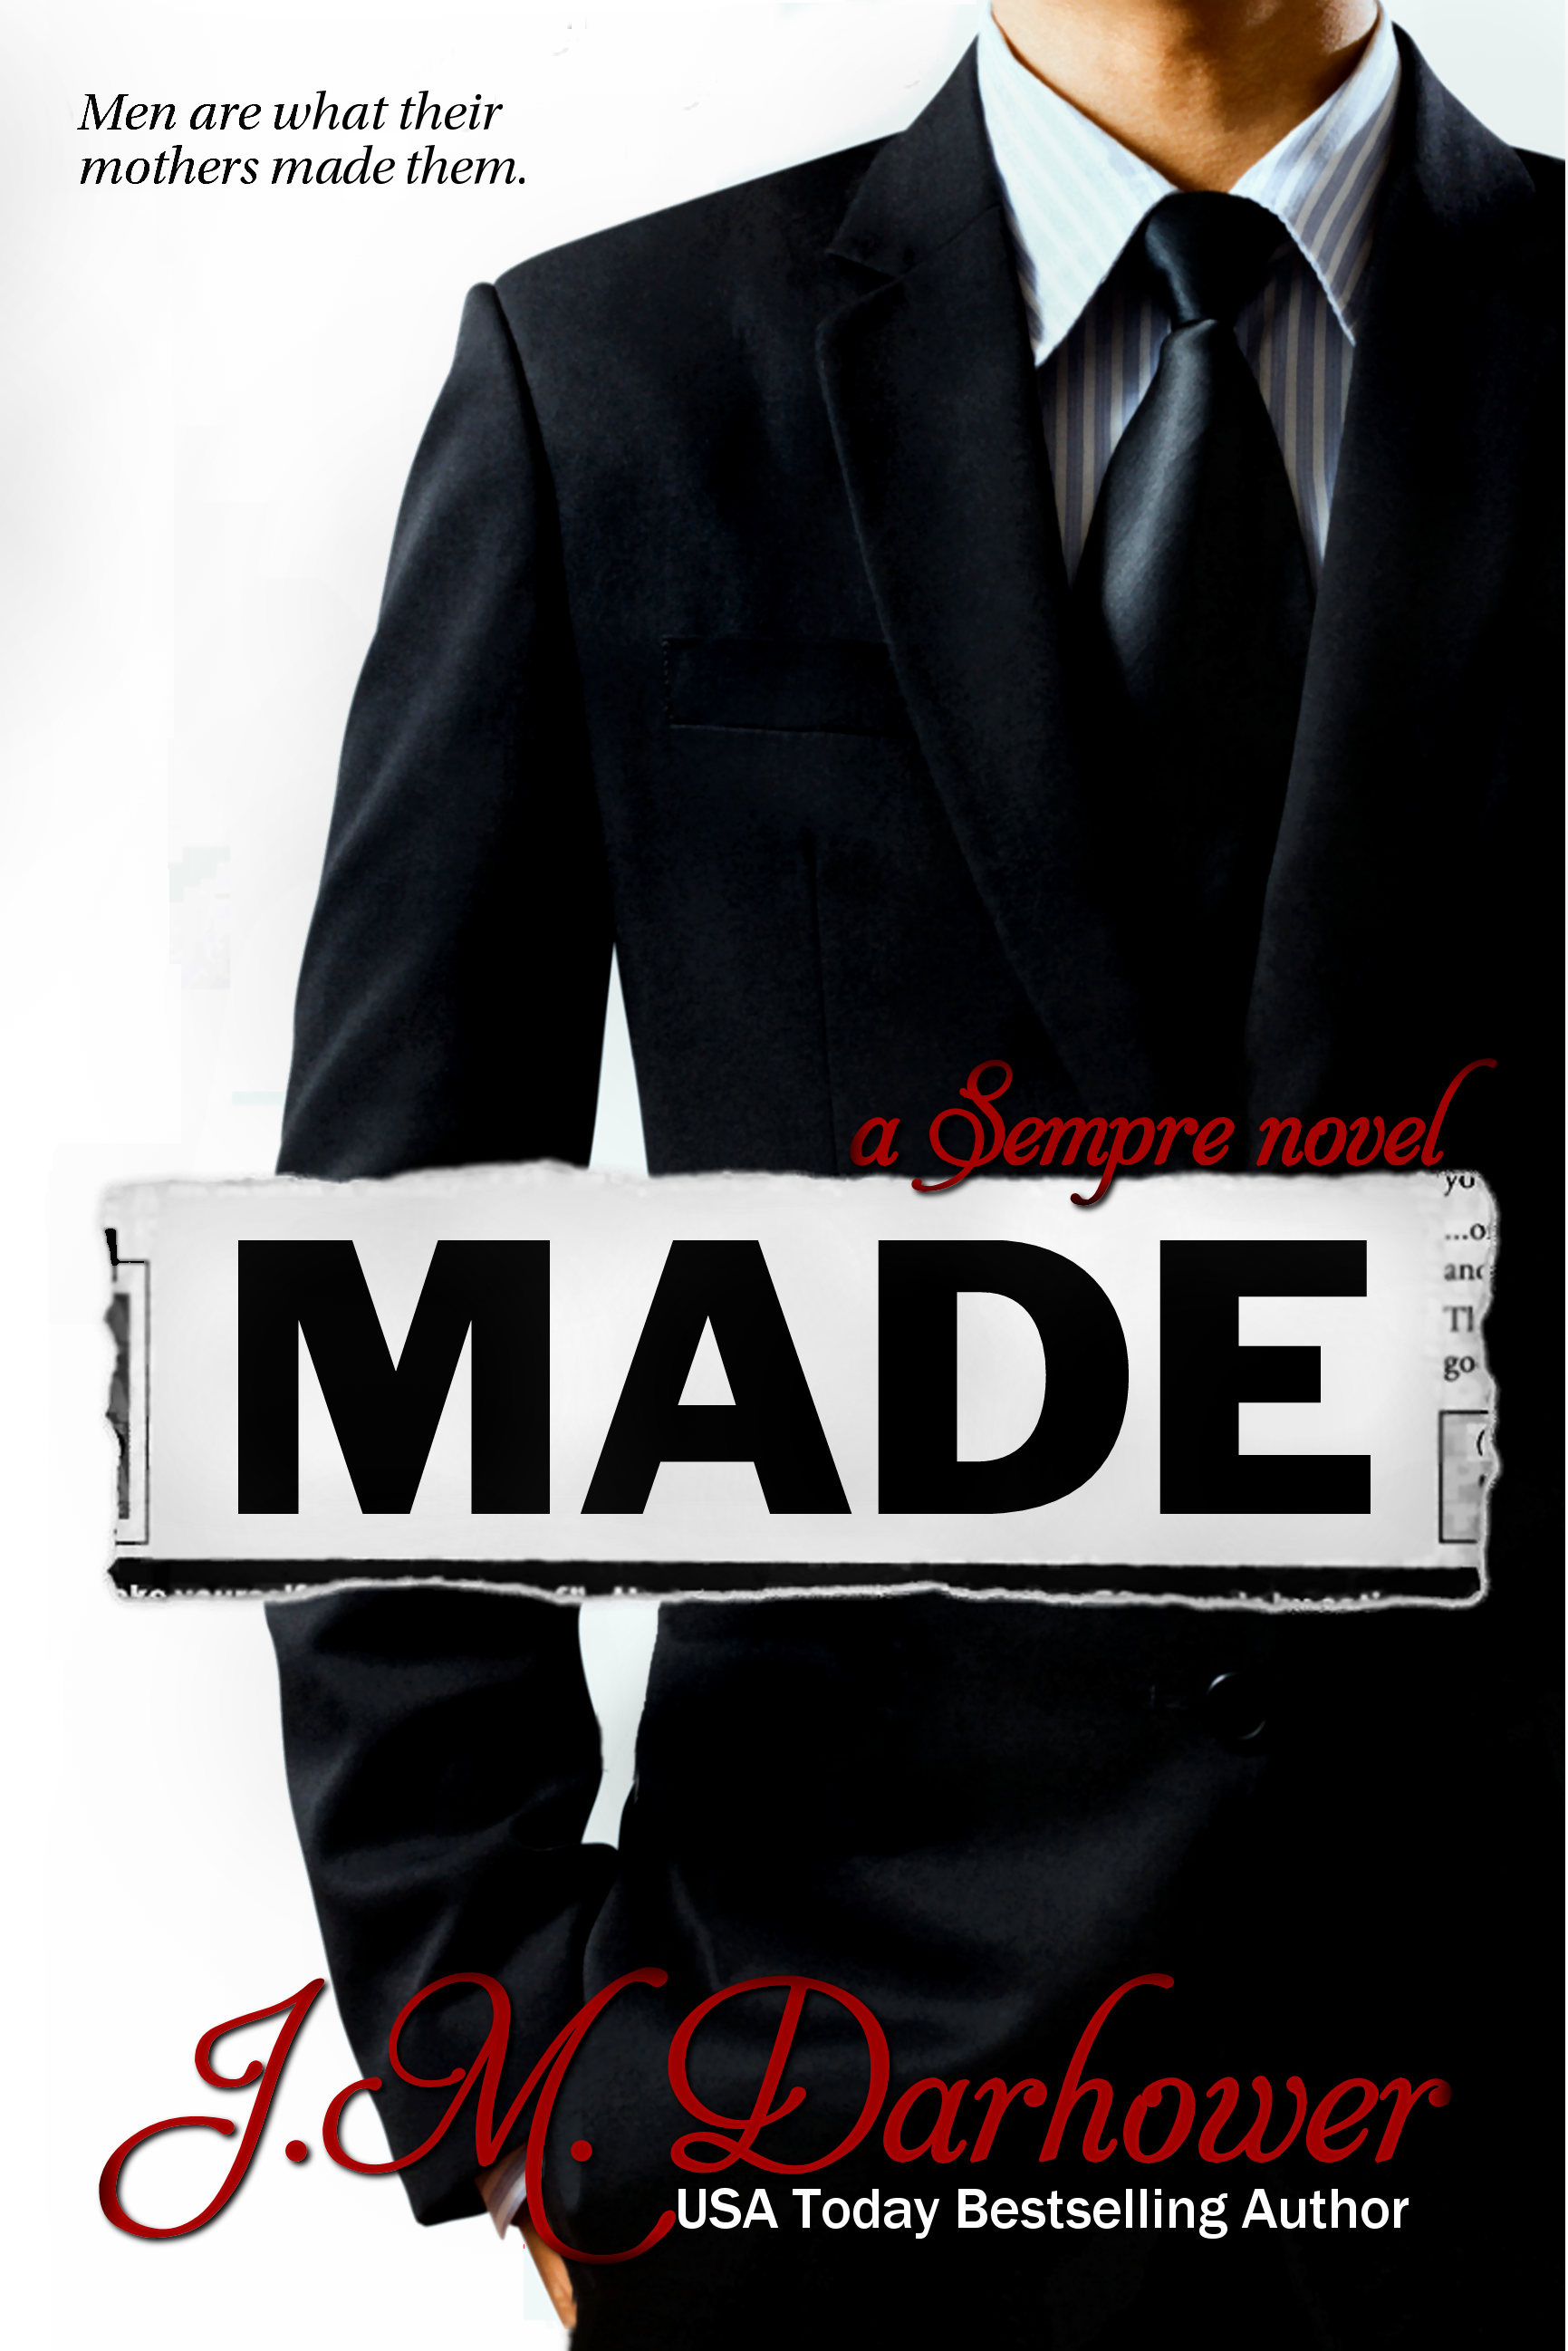 REVIEW:  5 Stars for MADE by J.M. Darhower